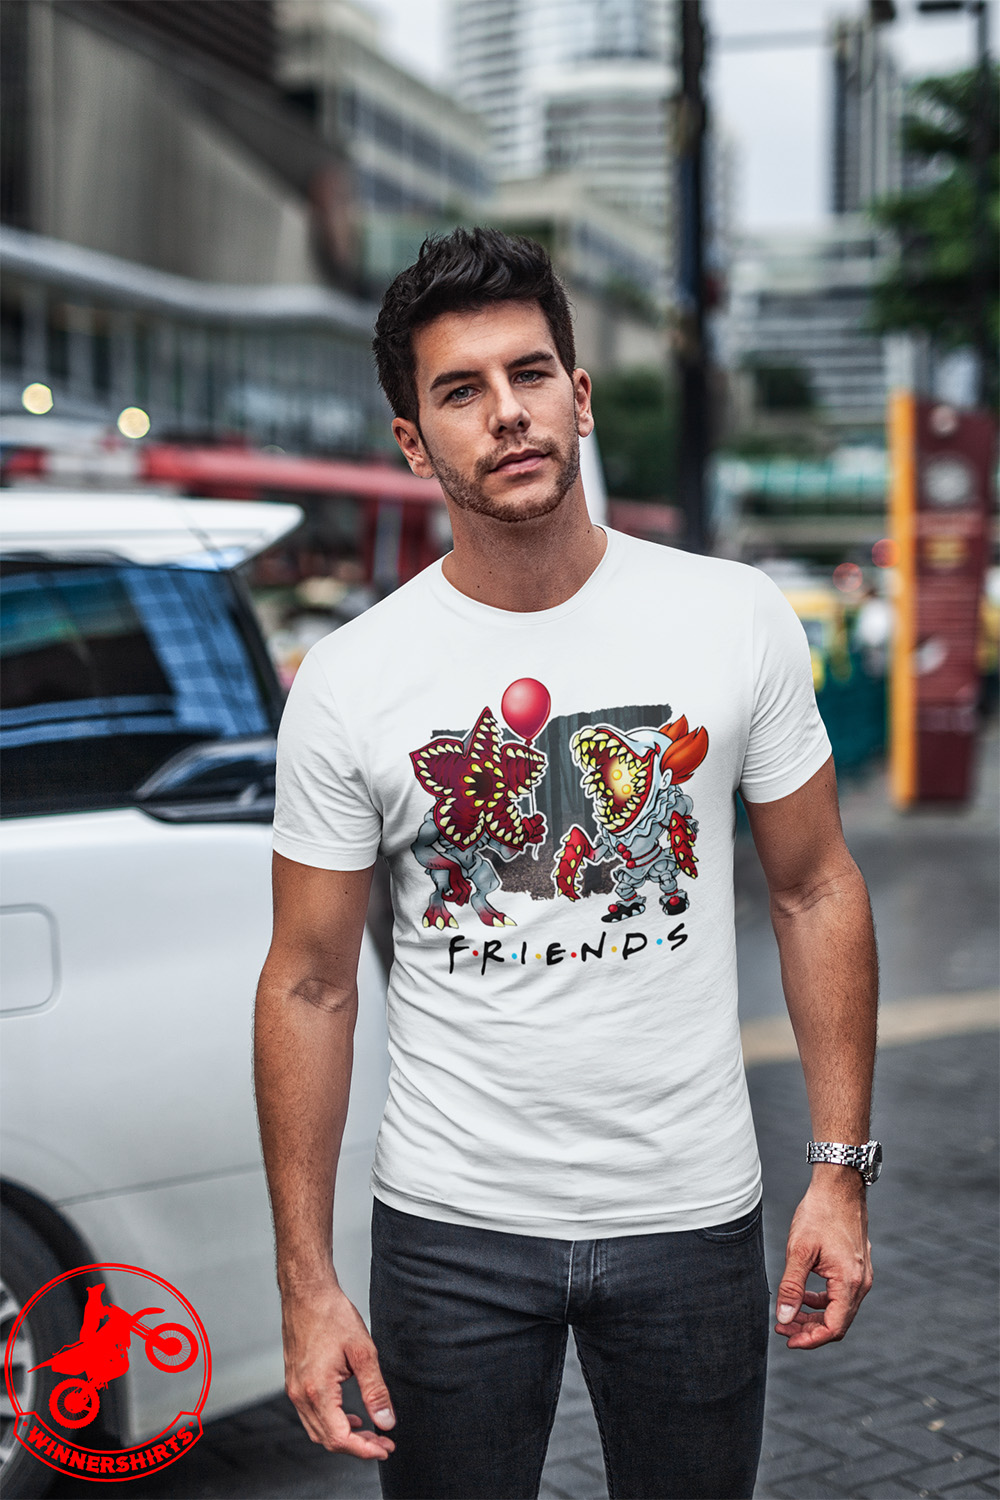 IT Pennywise Stranger Things Friends Shirt